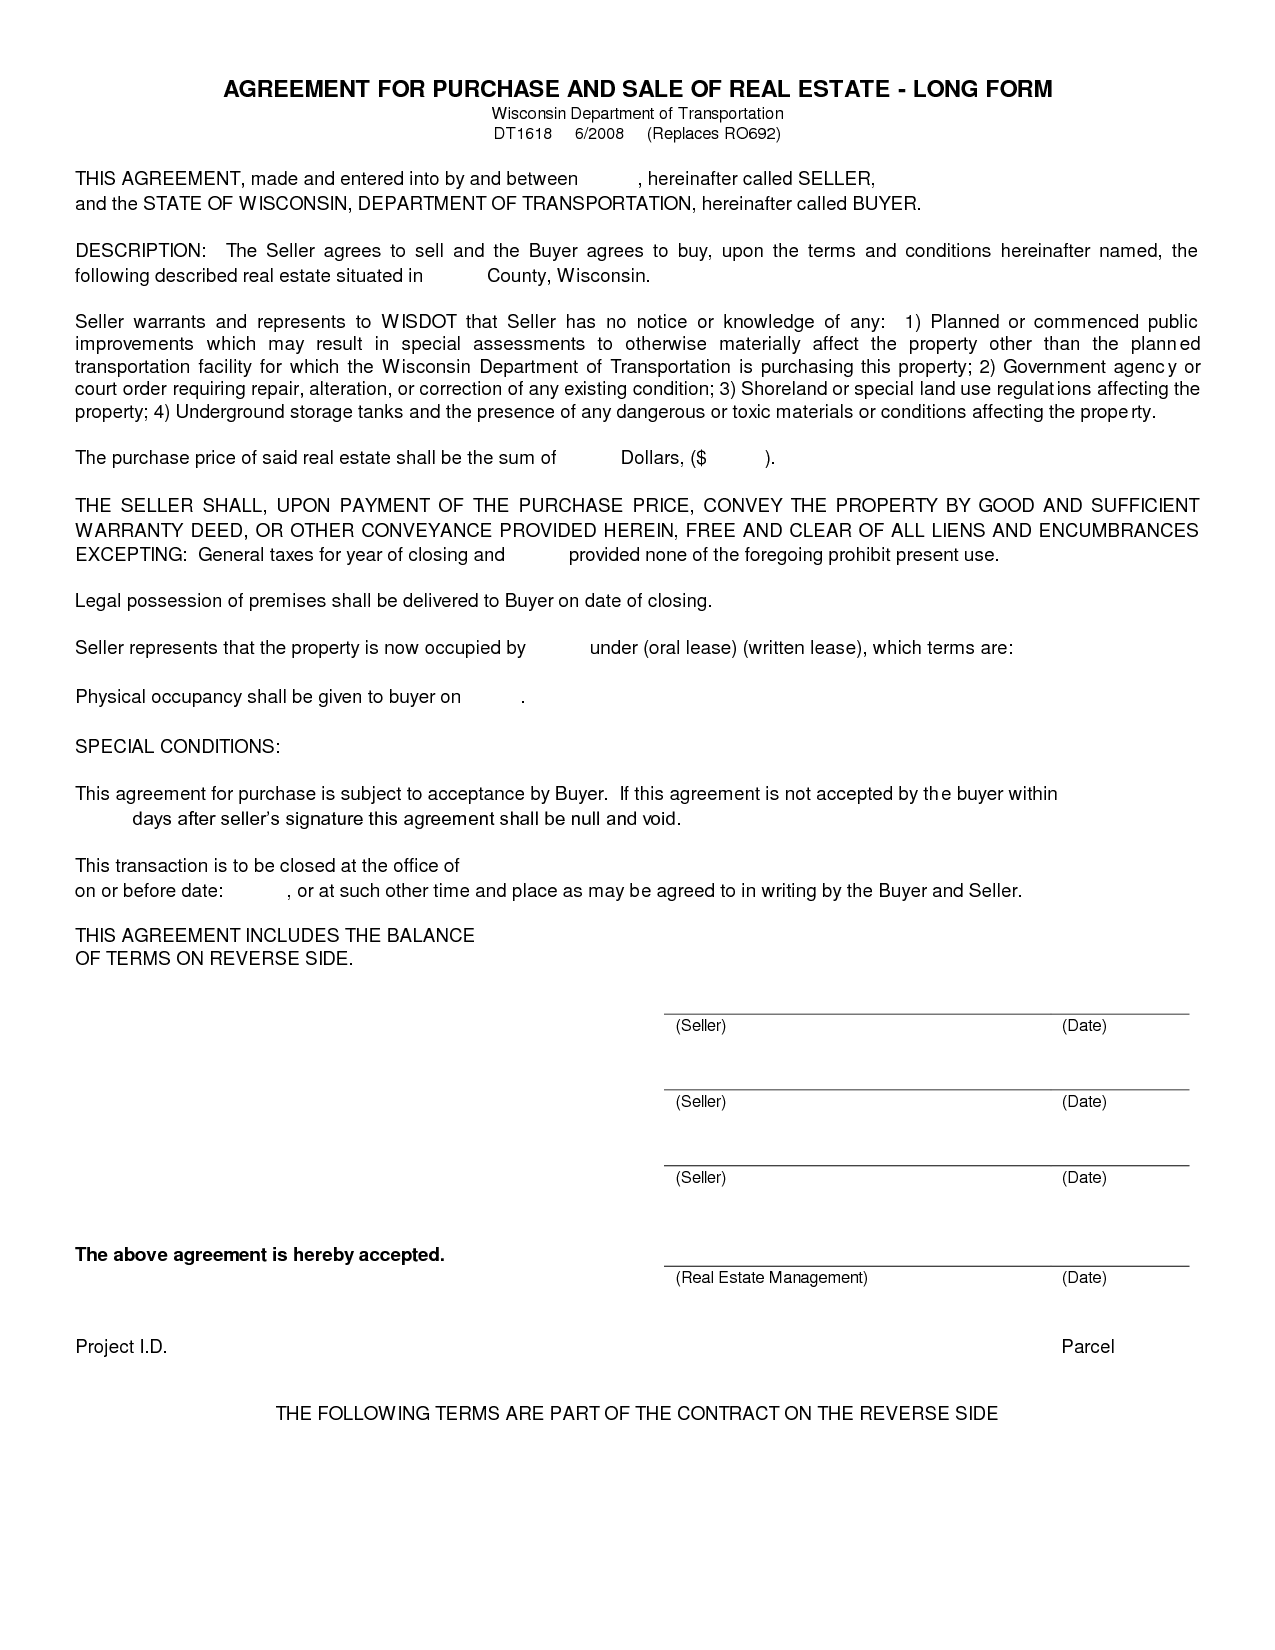 Sweet image with free printable purchase agreement forms